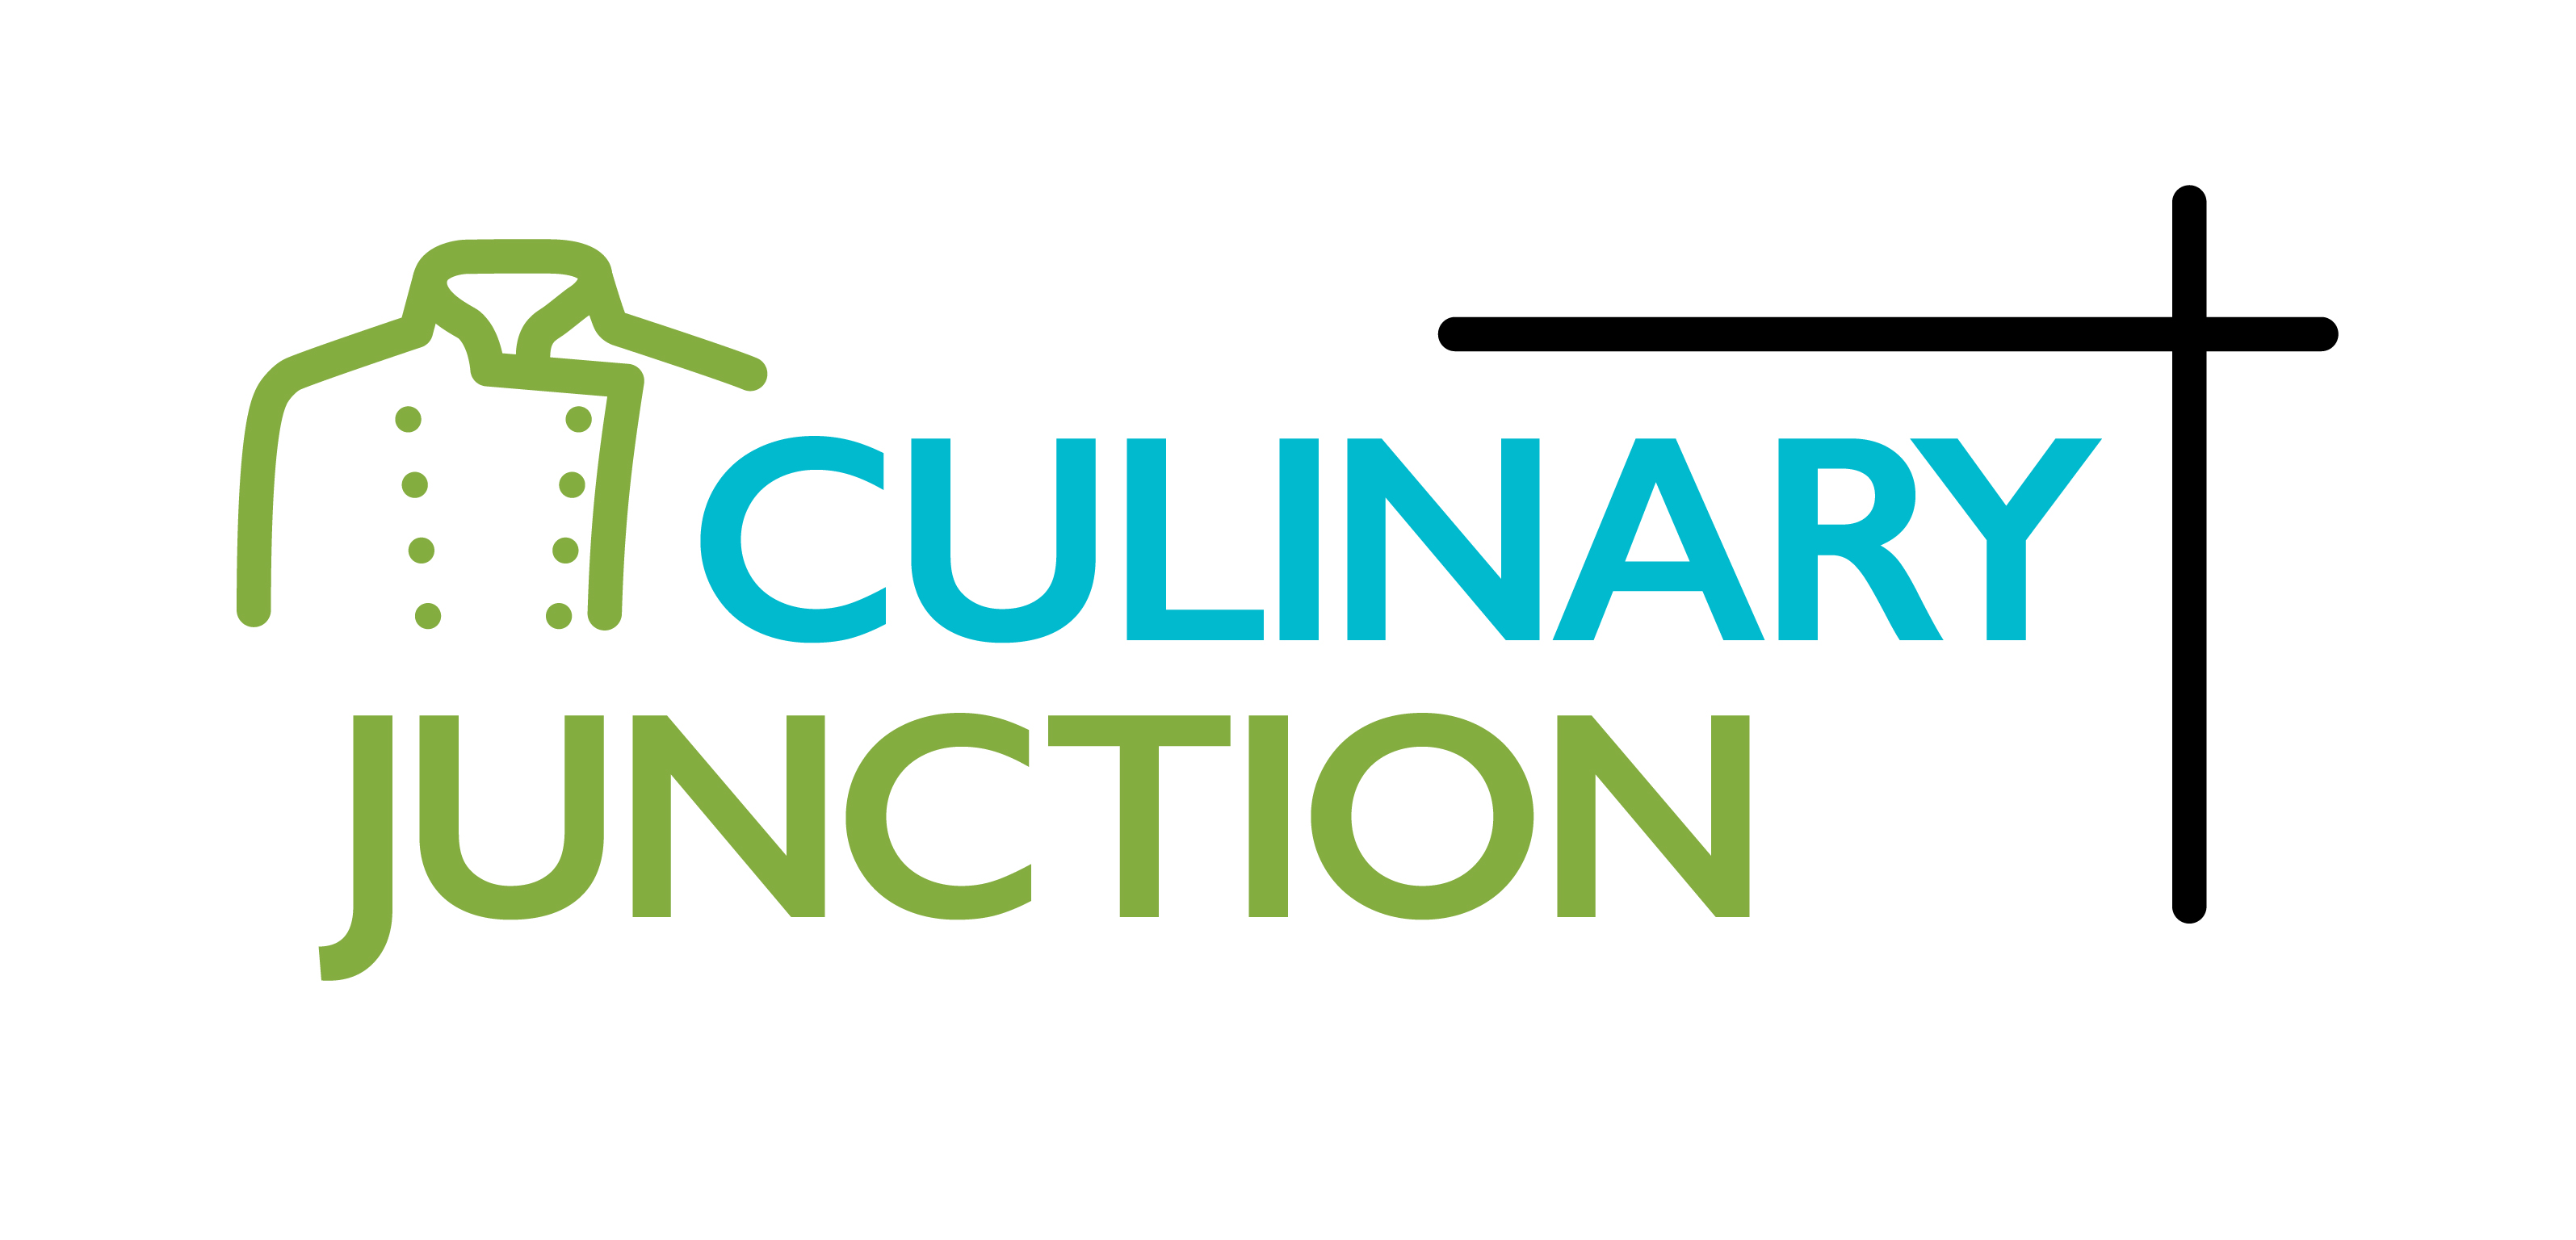 Culinary Junction